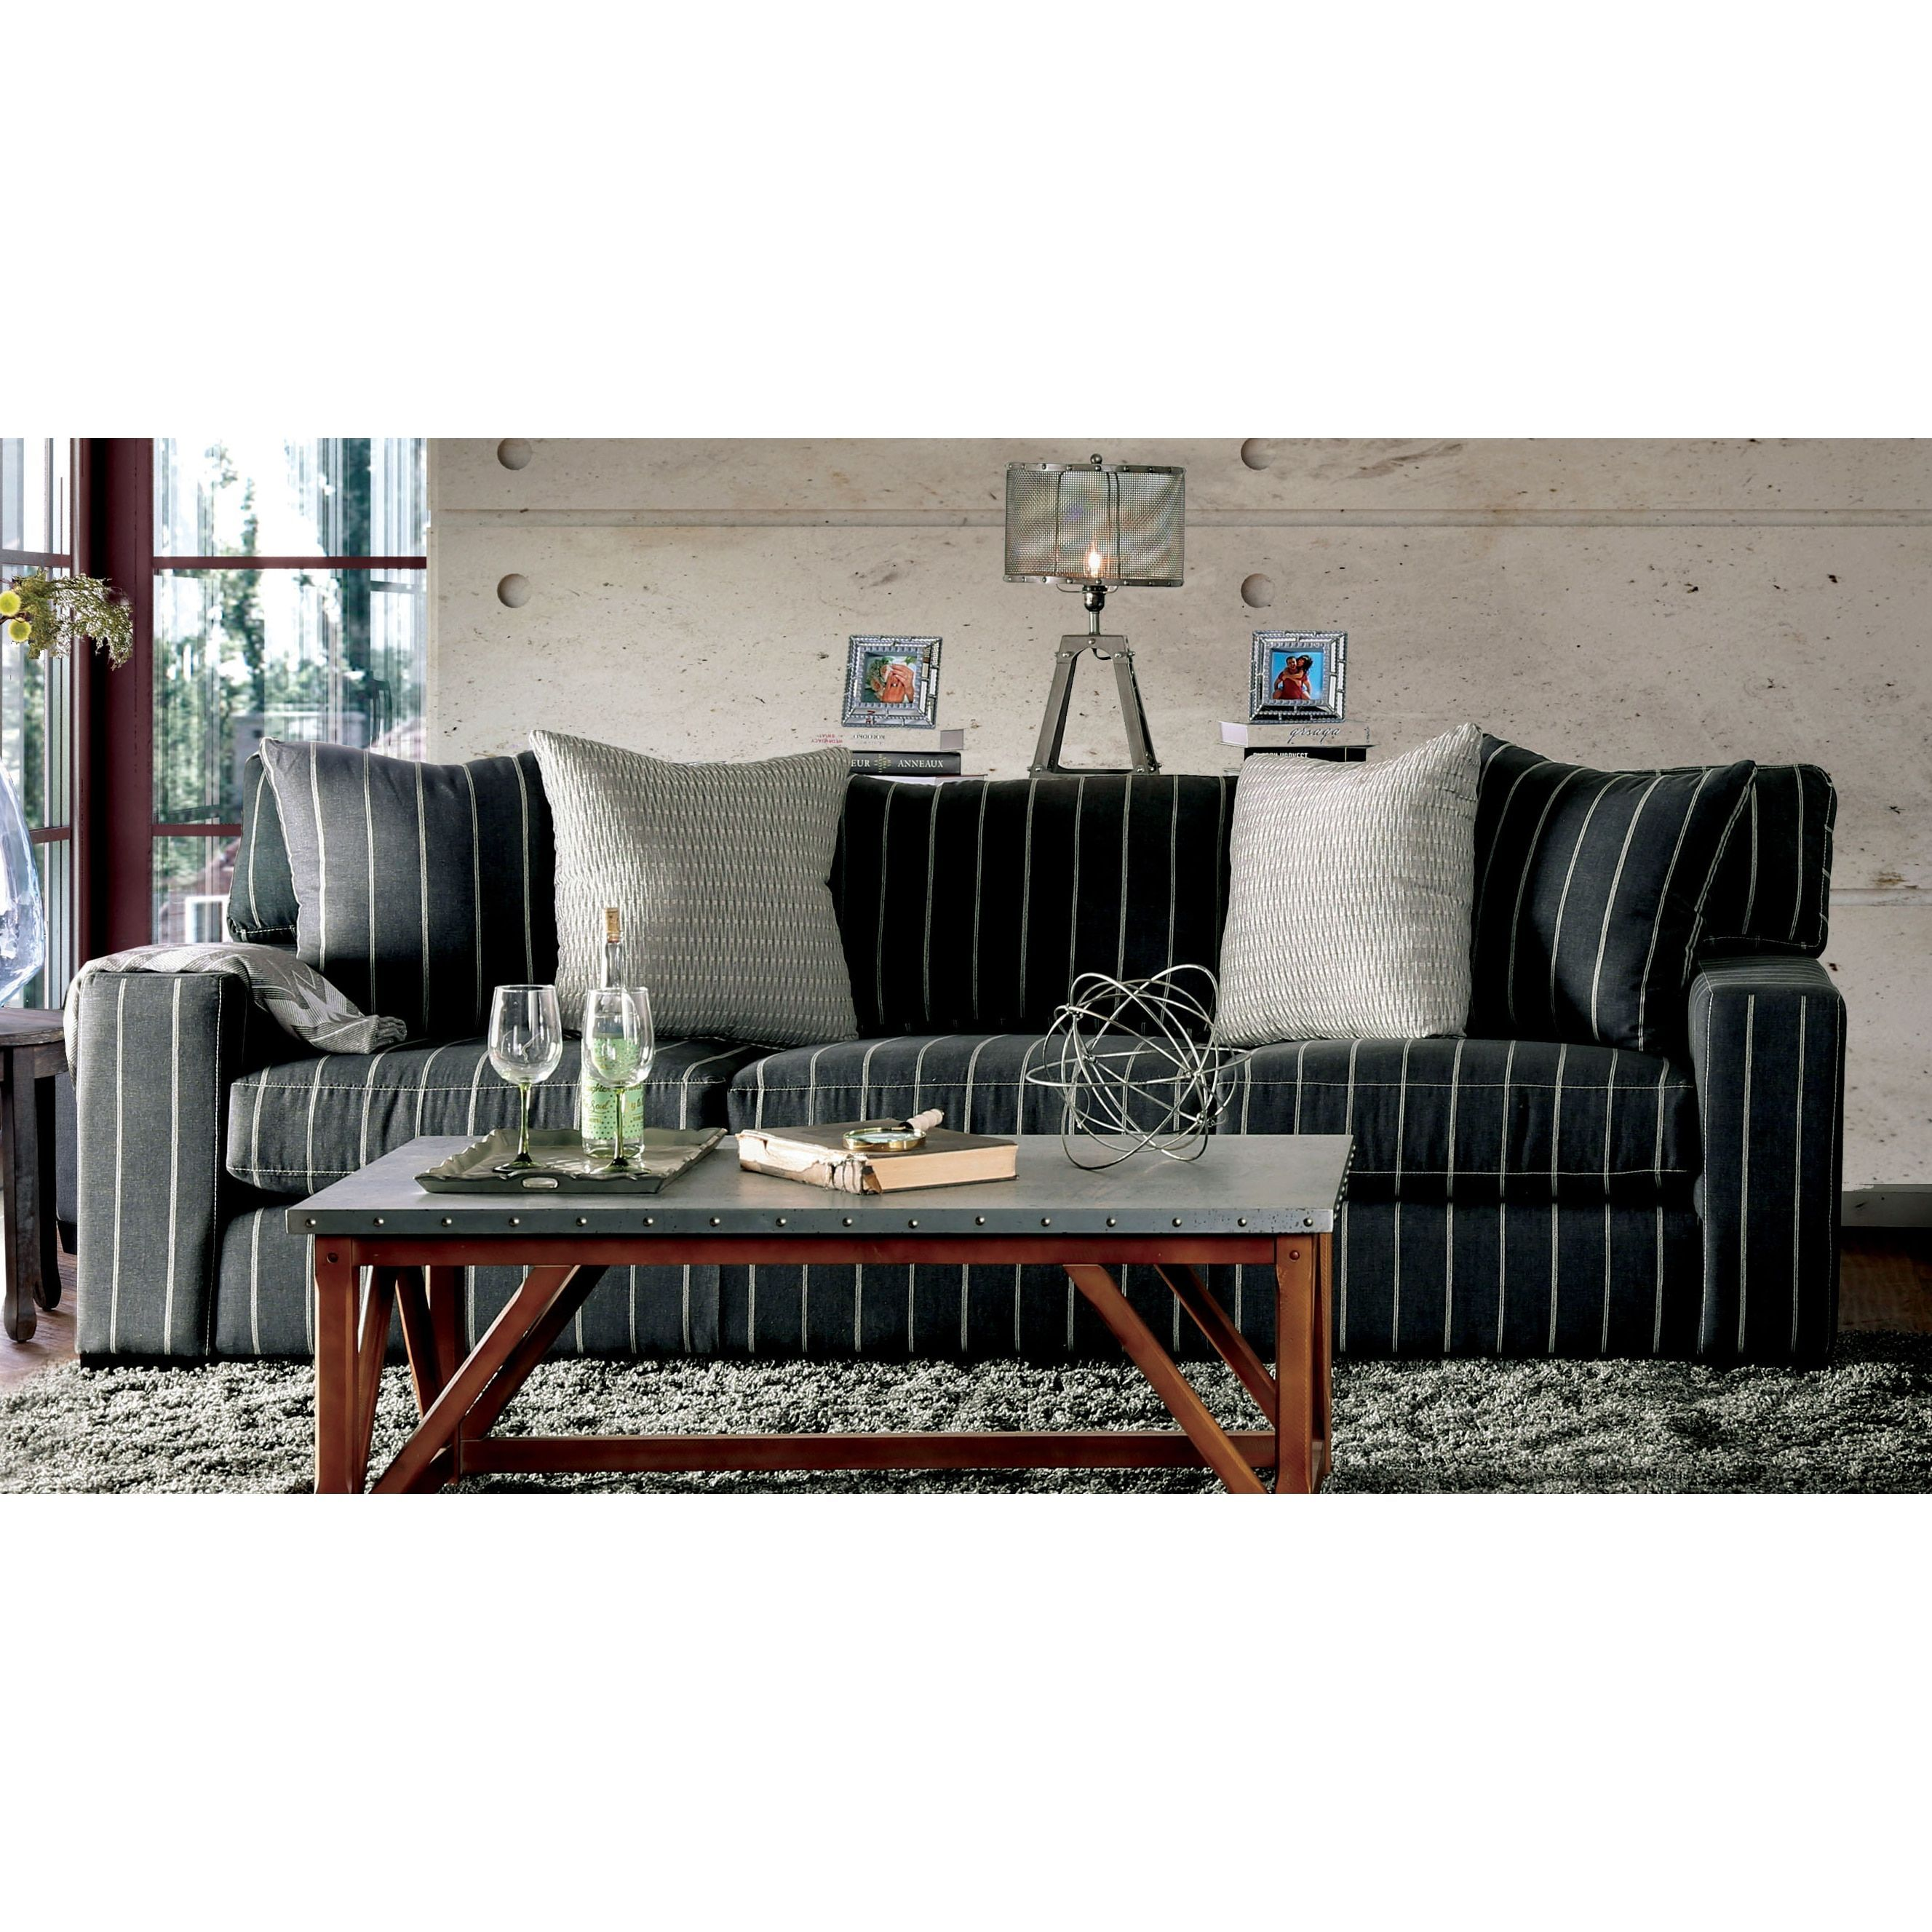 Bassist Striped Charcoal Premium Fabric Sofa by